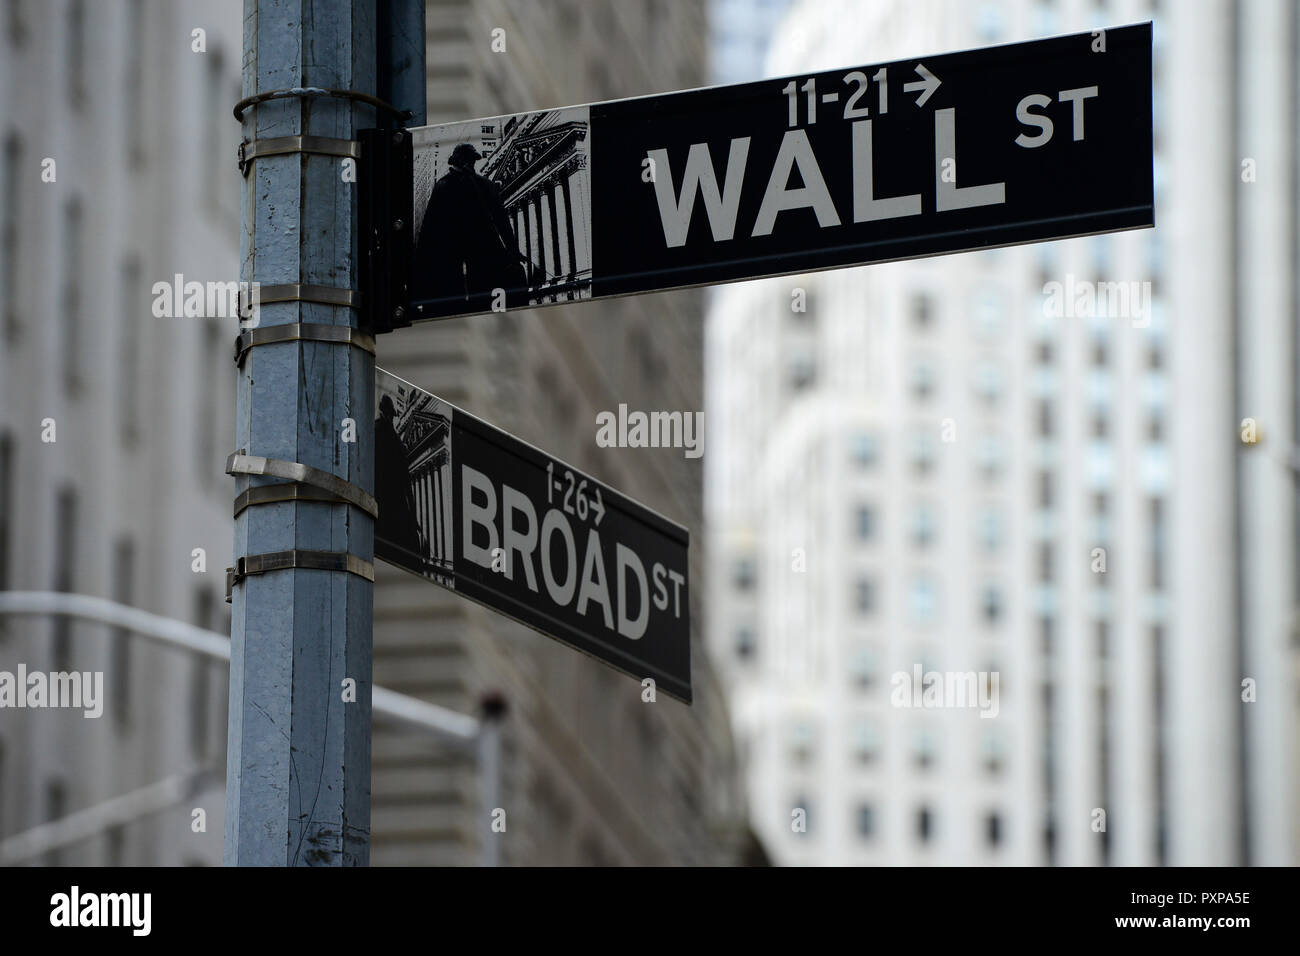 USA, New York City, Manhattan, Gebäude der New Yorker Börse NYSE an der Wall Street Broad Street, Finanzkrise, Börsenkrise Stockfoto